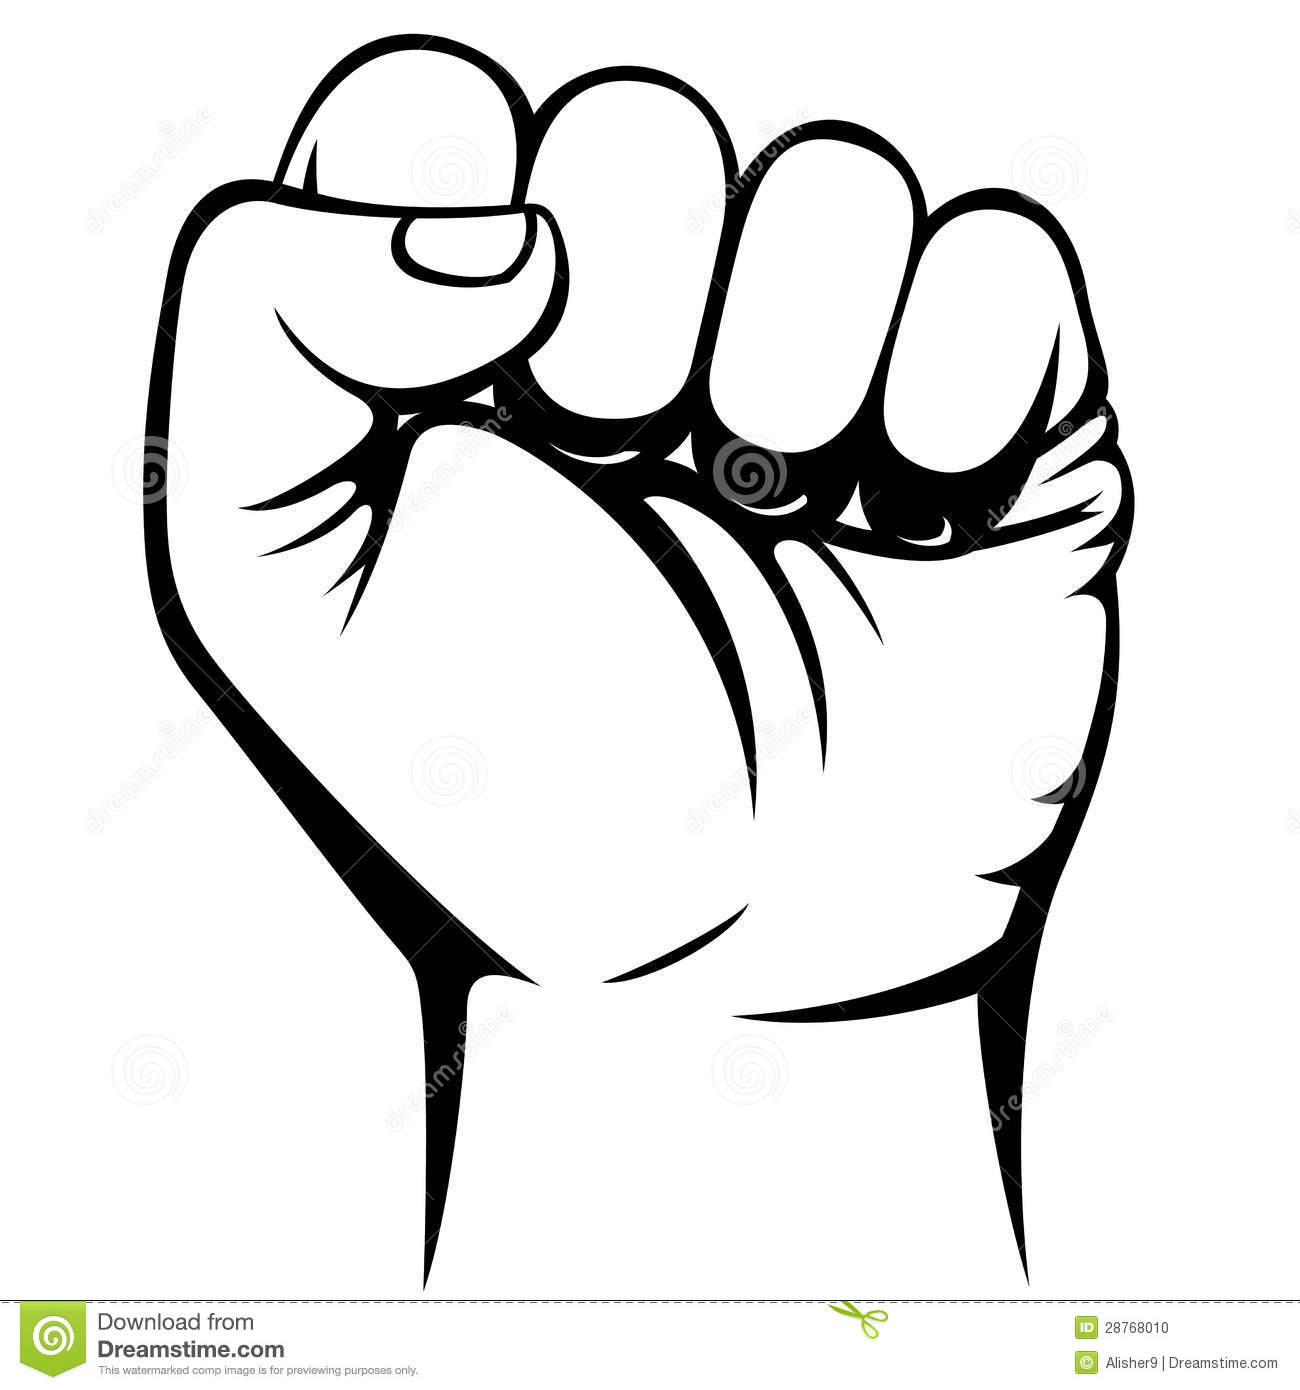 Hulk clipart fist Fist And White Clipart Closed